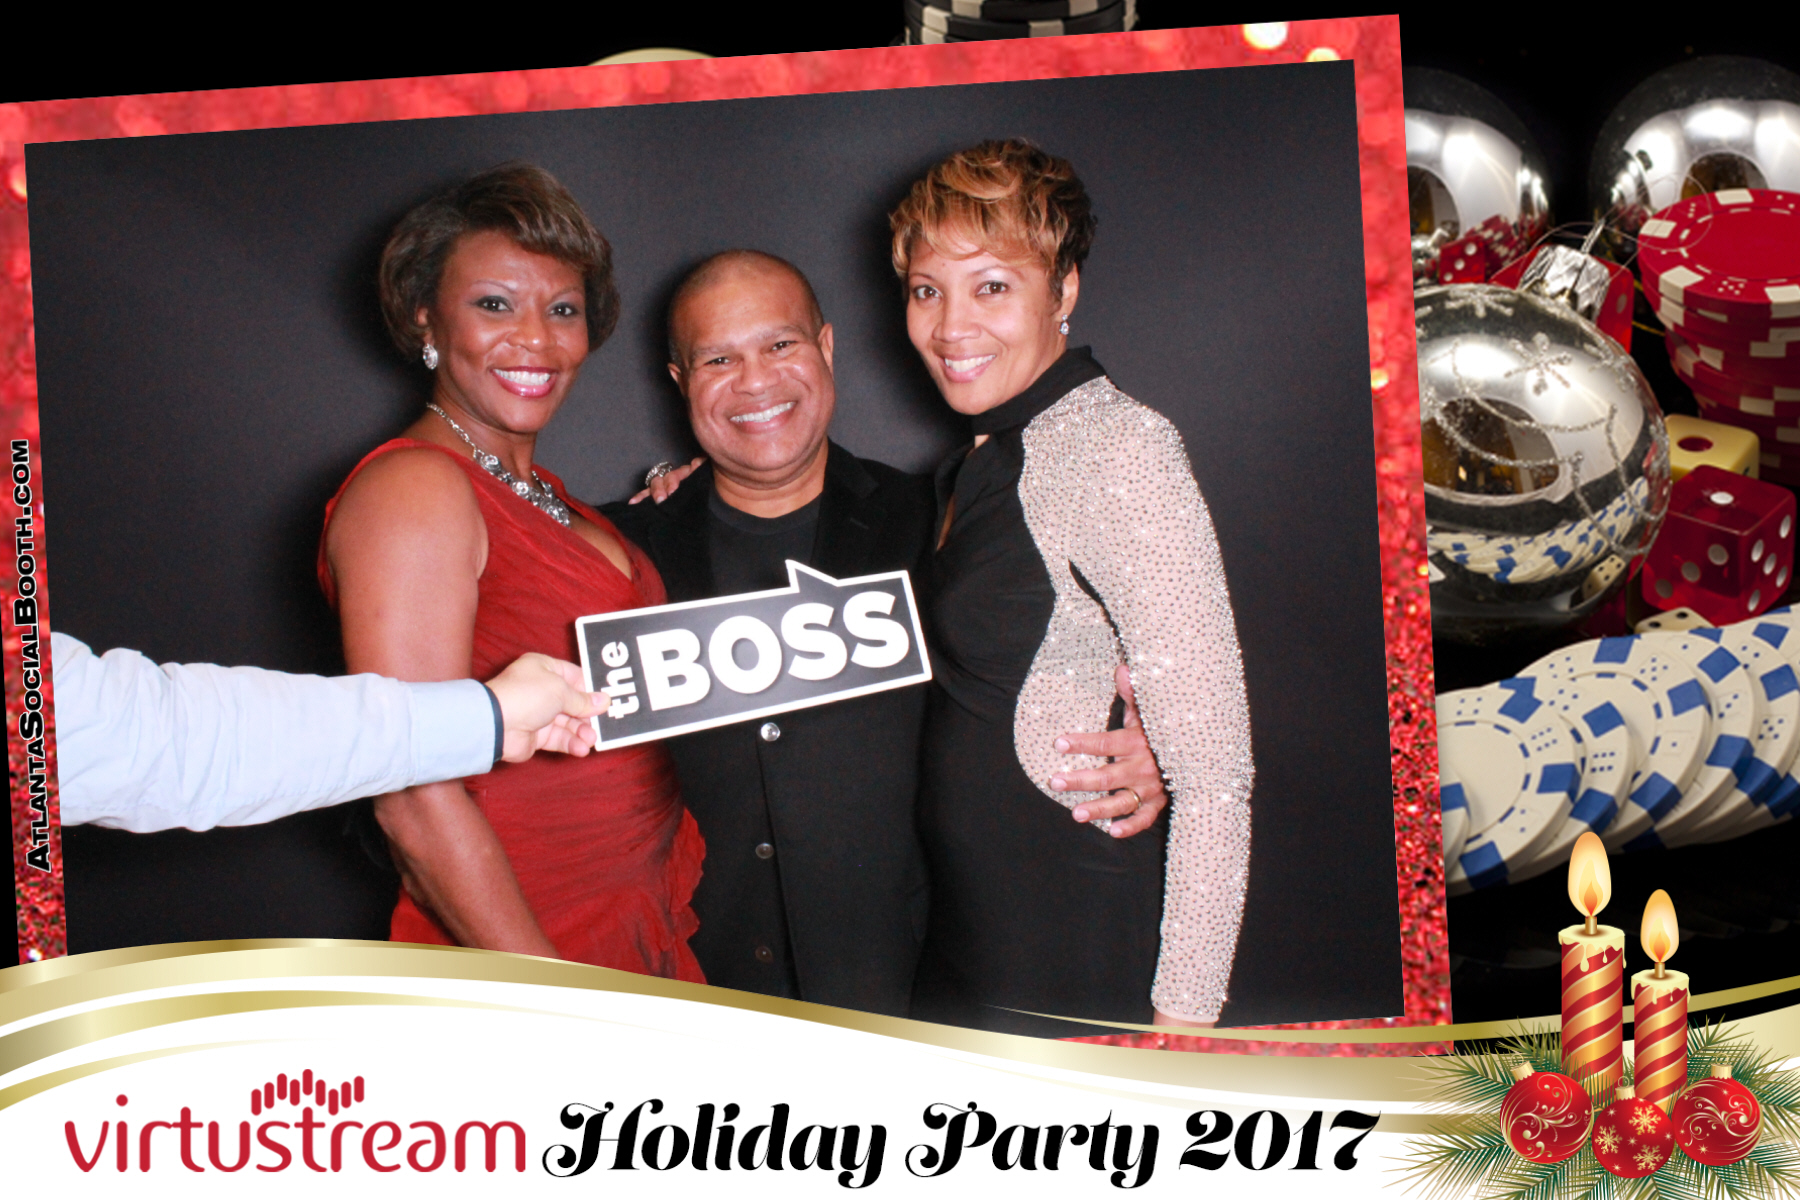 Virtustream Holiday Casino Party